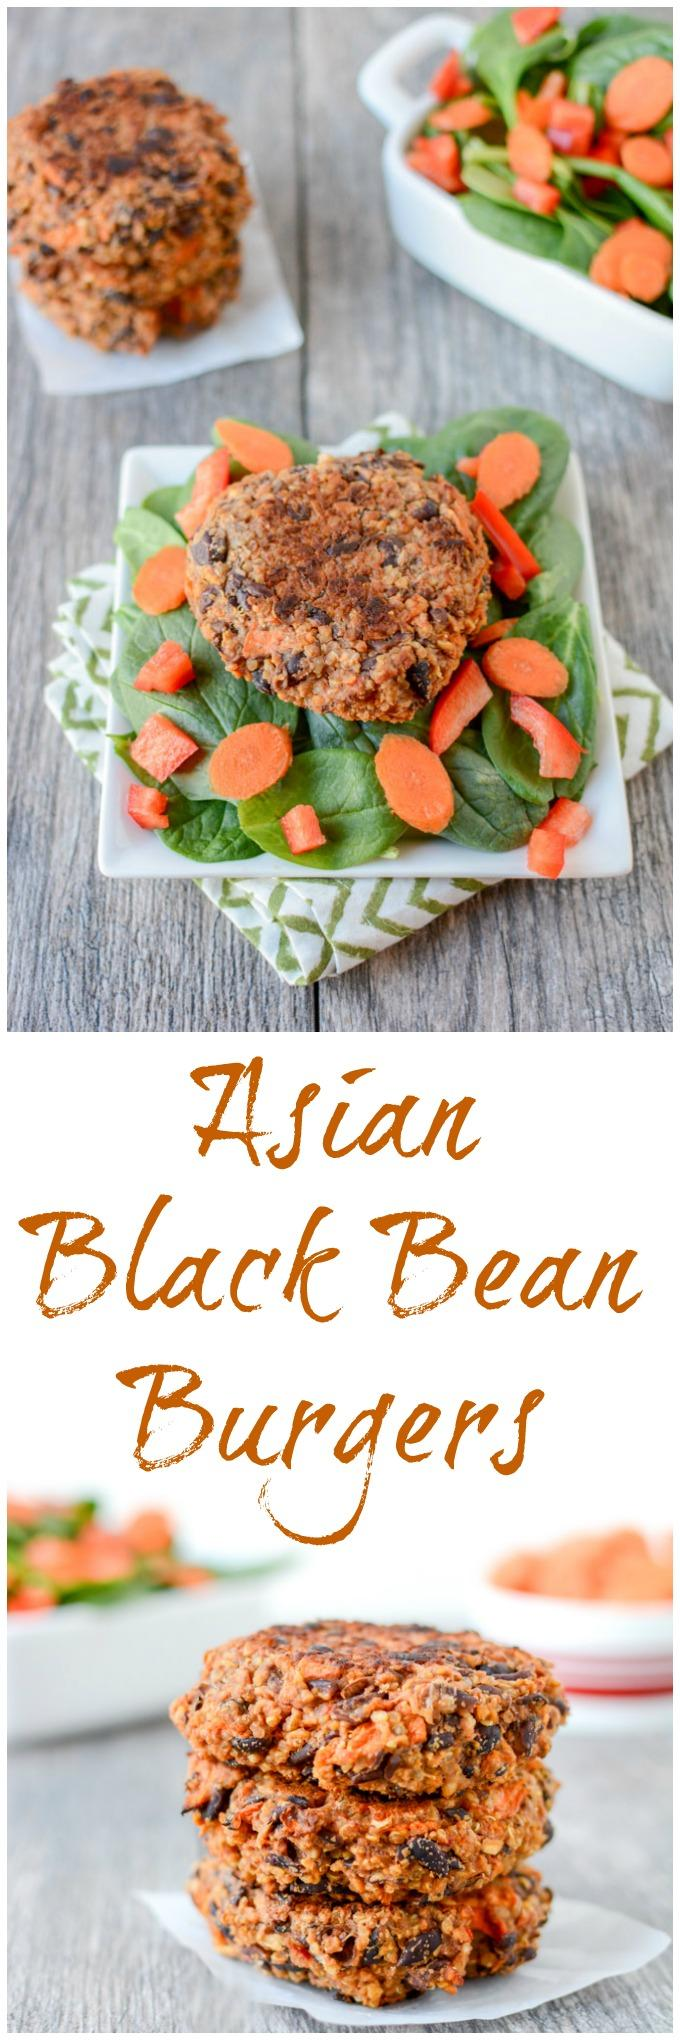 This recipe for Asian Black Bean Burgers is full of flavor and perfect for food prep. The burgers are packed with protein and fiber and taste great with a salad for a healthy, vegan lunch!